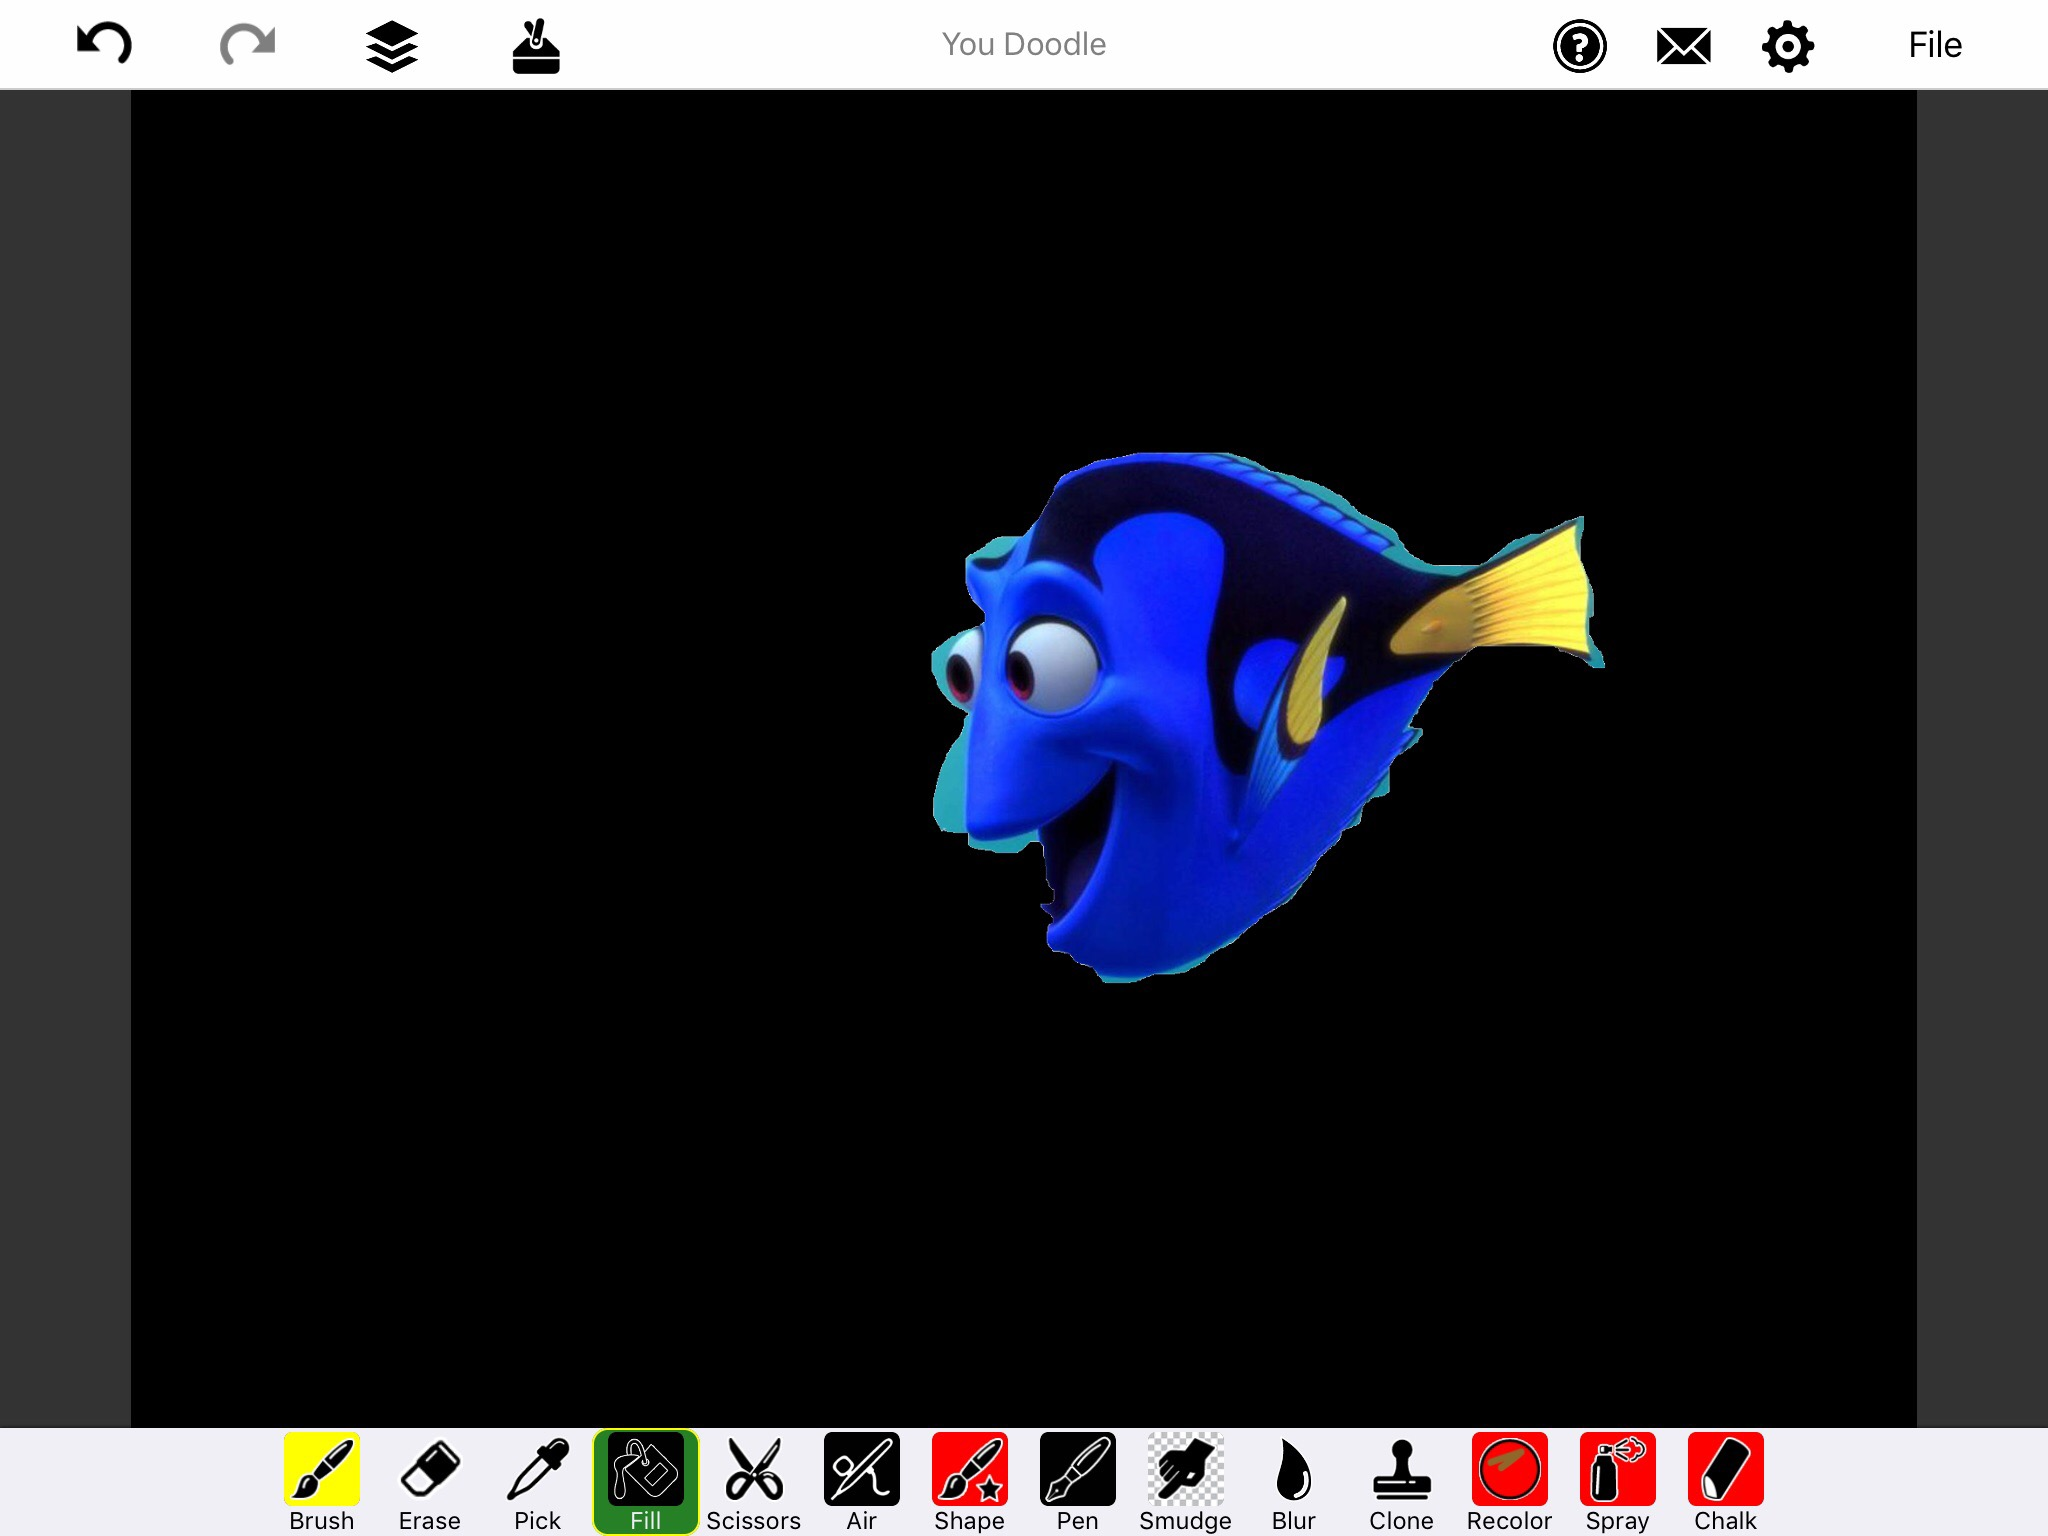 Screenshot of You Doodle app with Dory on a solid black background.